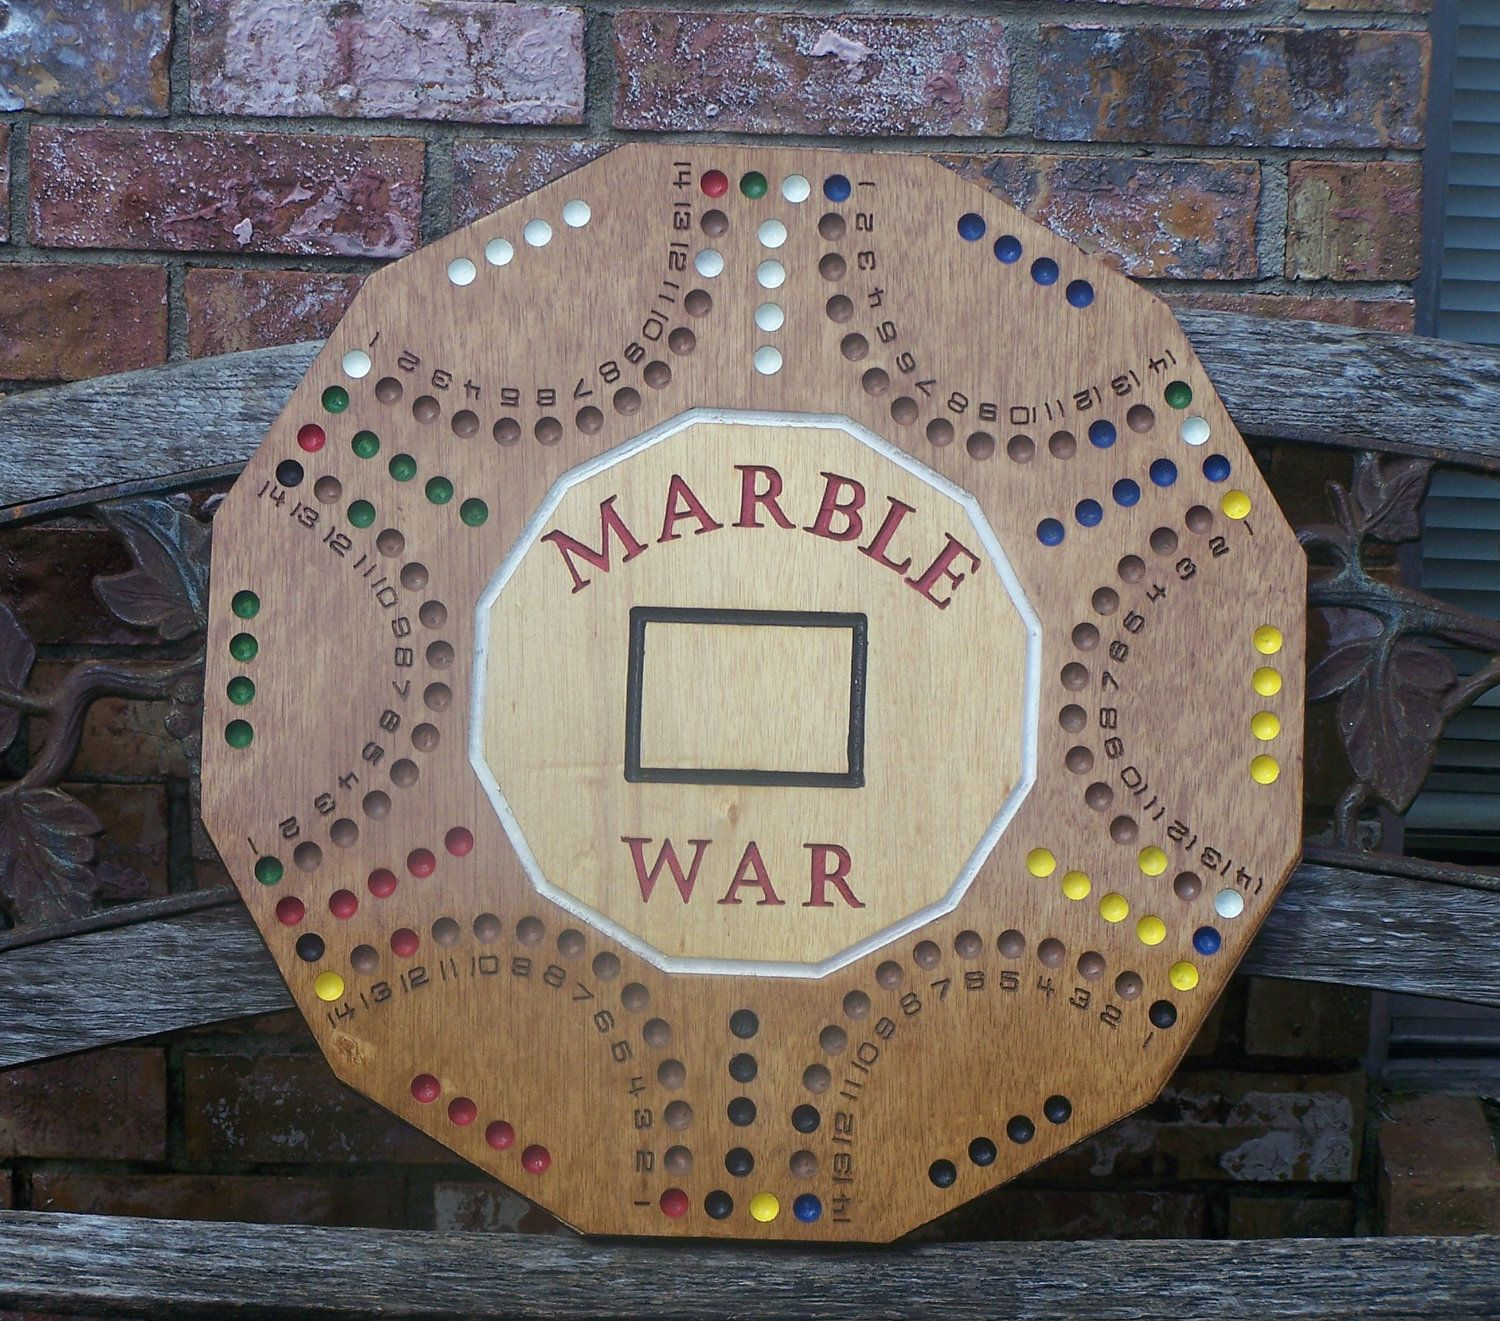 Marble War board game similar to aggravation with playing